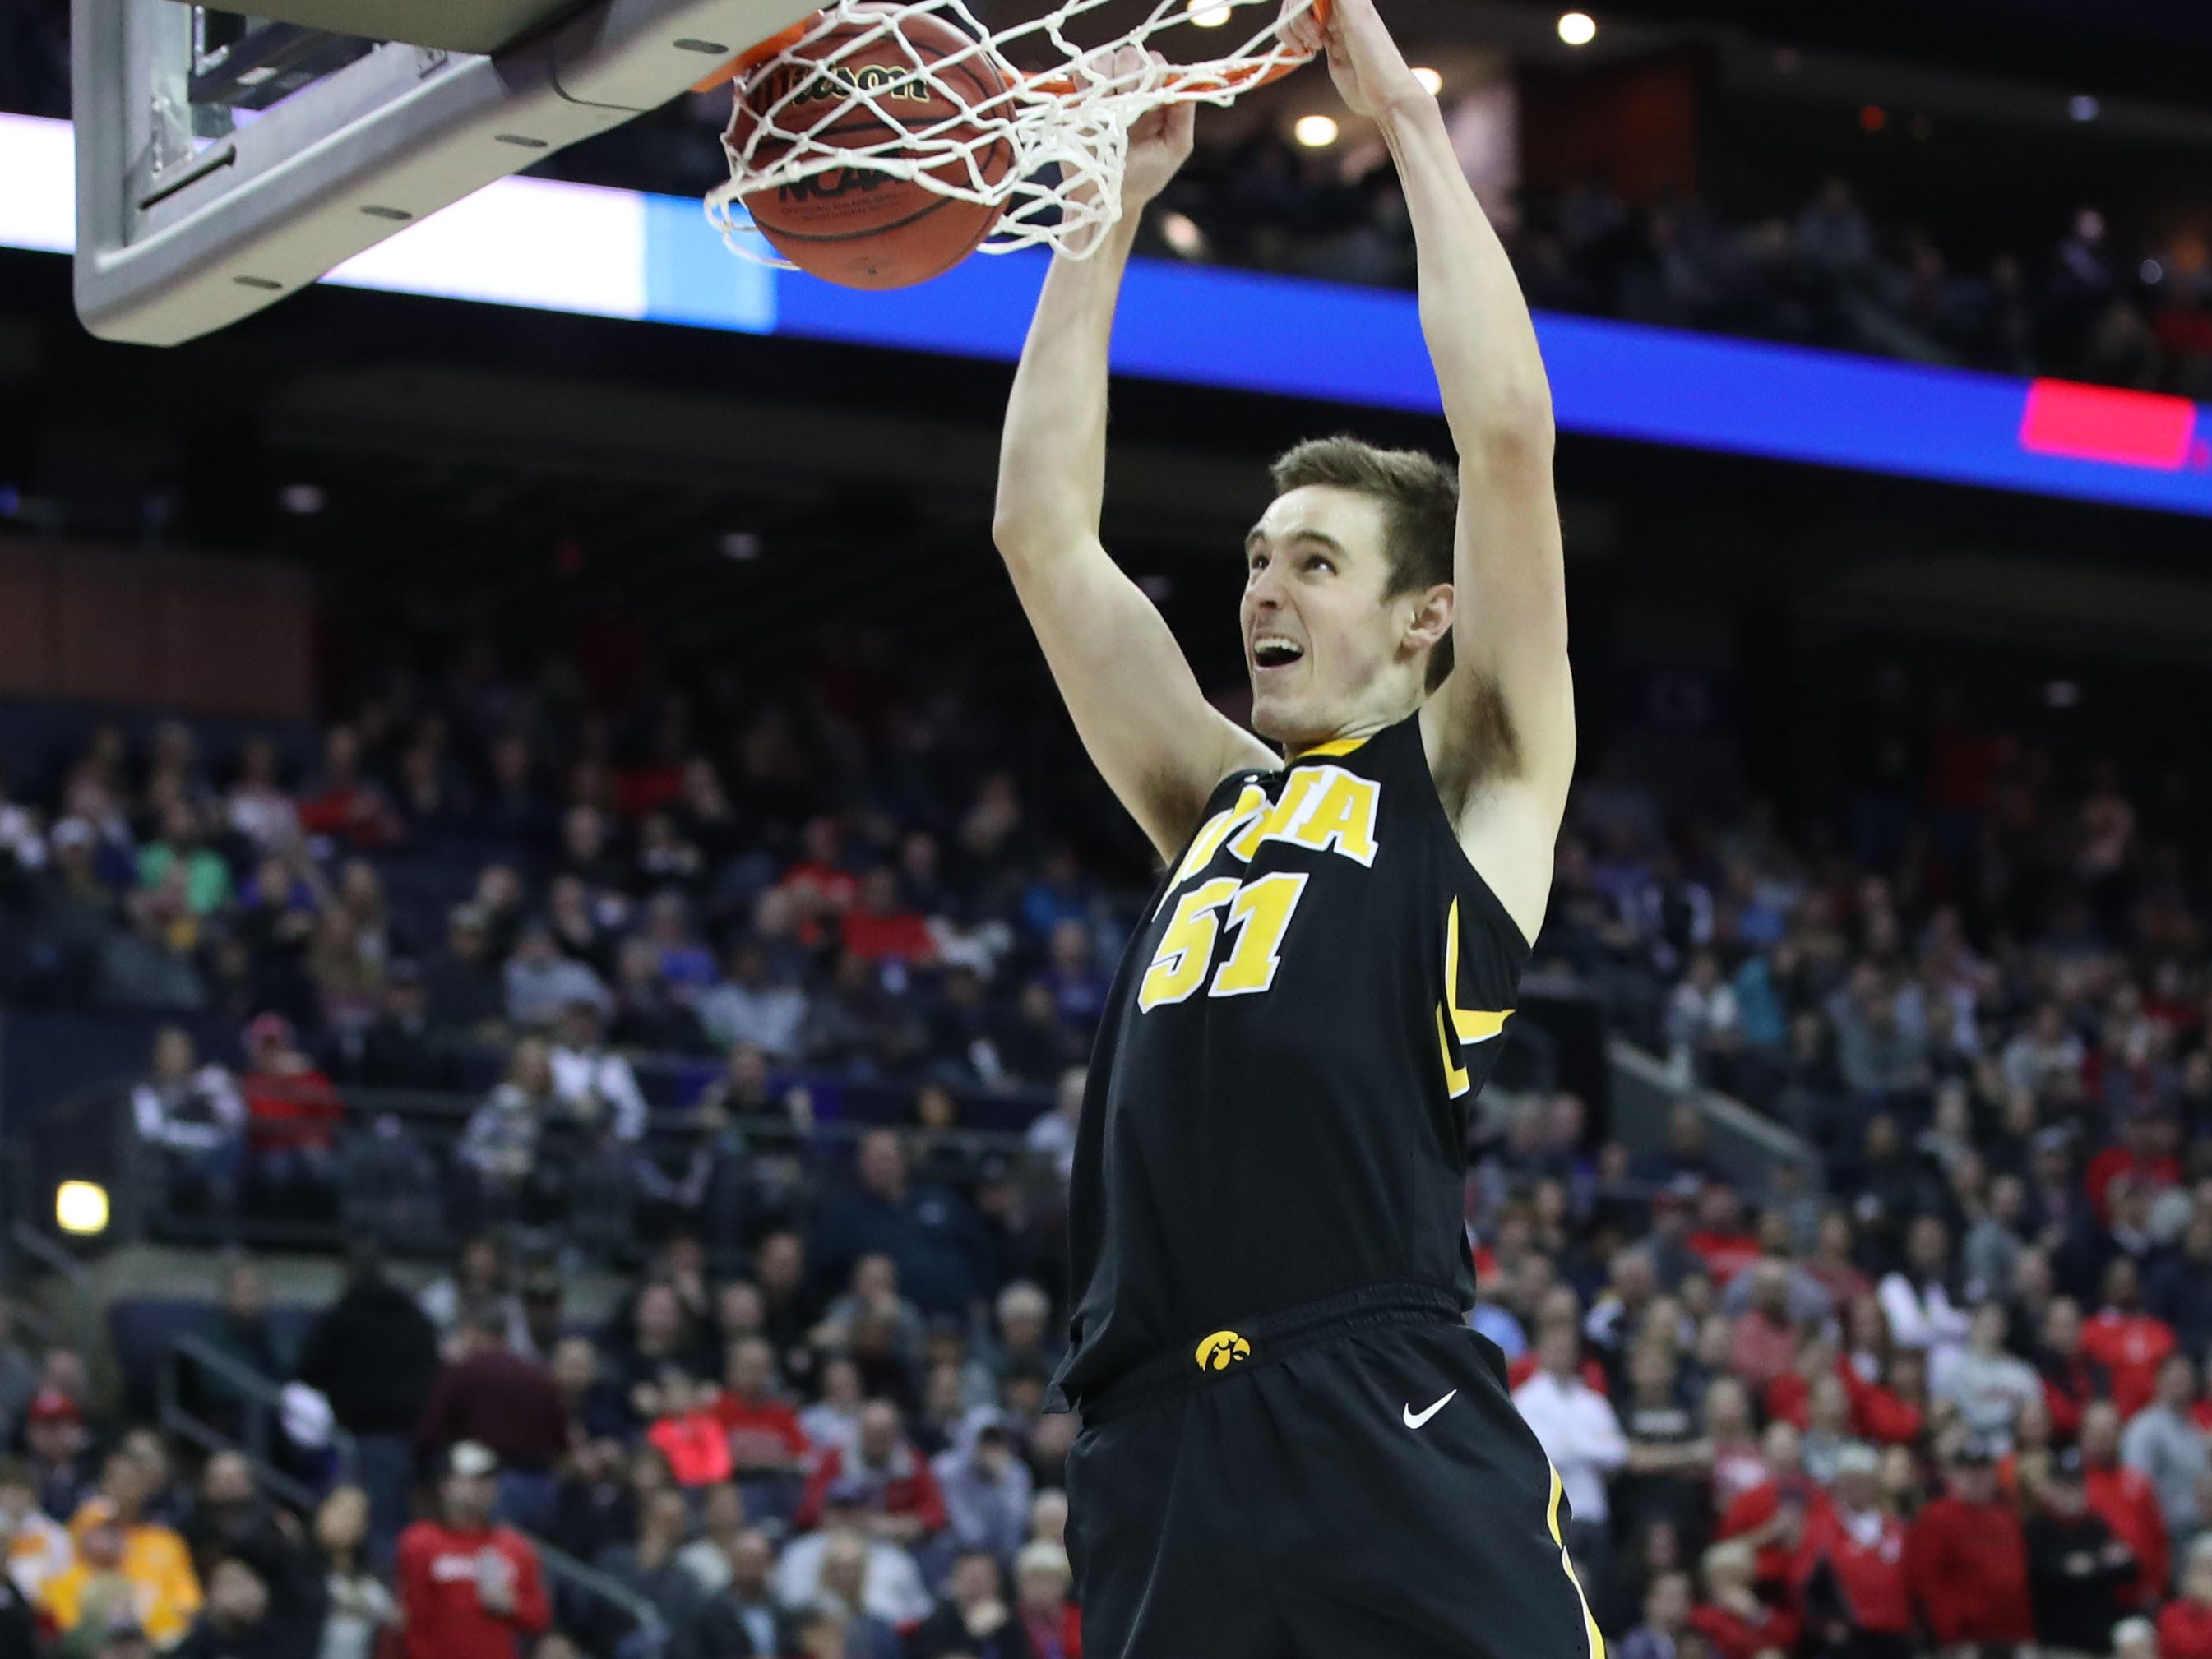 Iowa Hawkeyes forward Nicholas Baer (51) dunks the ball in the second half against the Cincinnati Bearcats in the first round of the 2019 NCAA Tournament at Nationwide Arena on March 22, 2019.